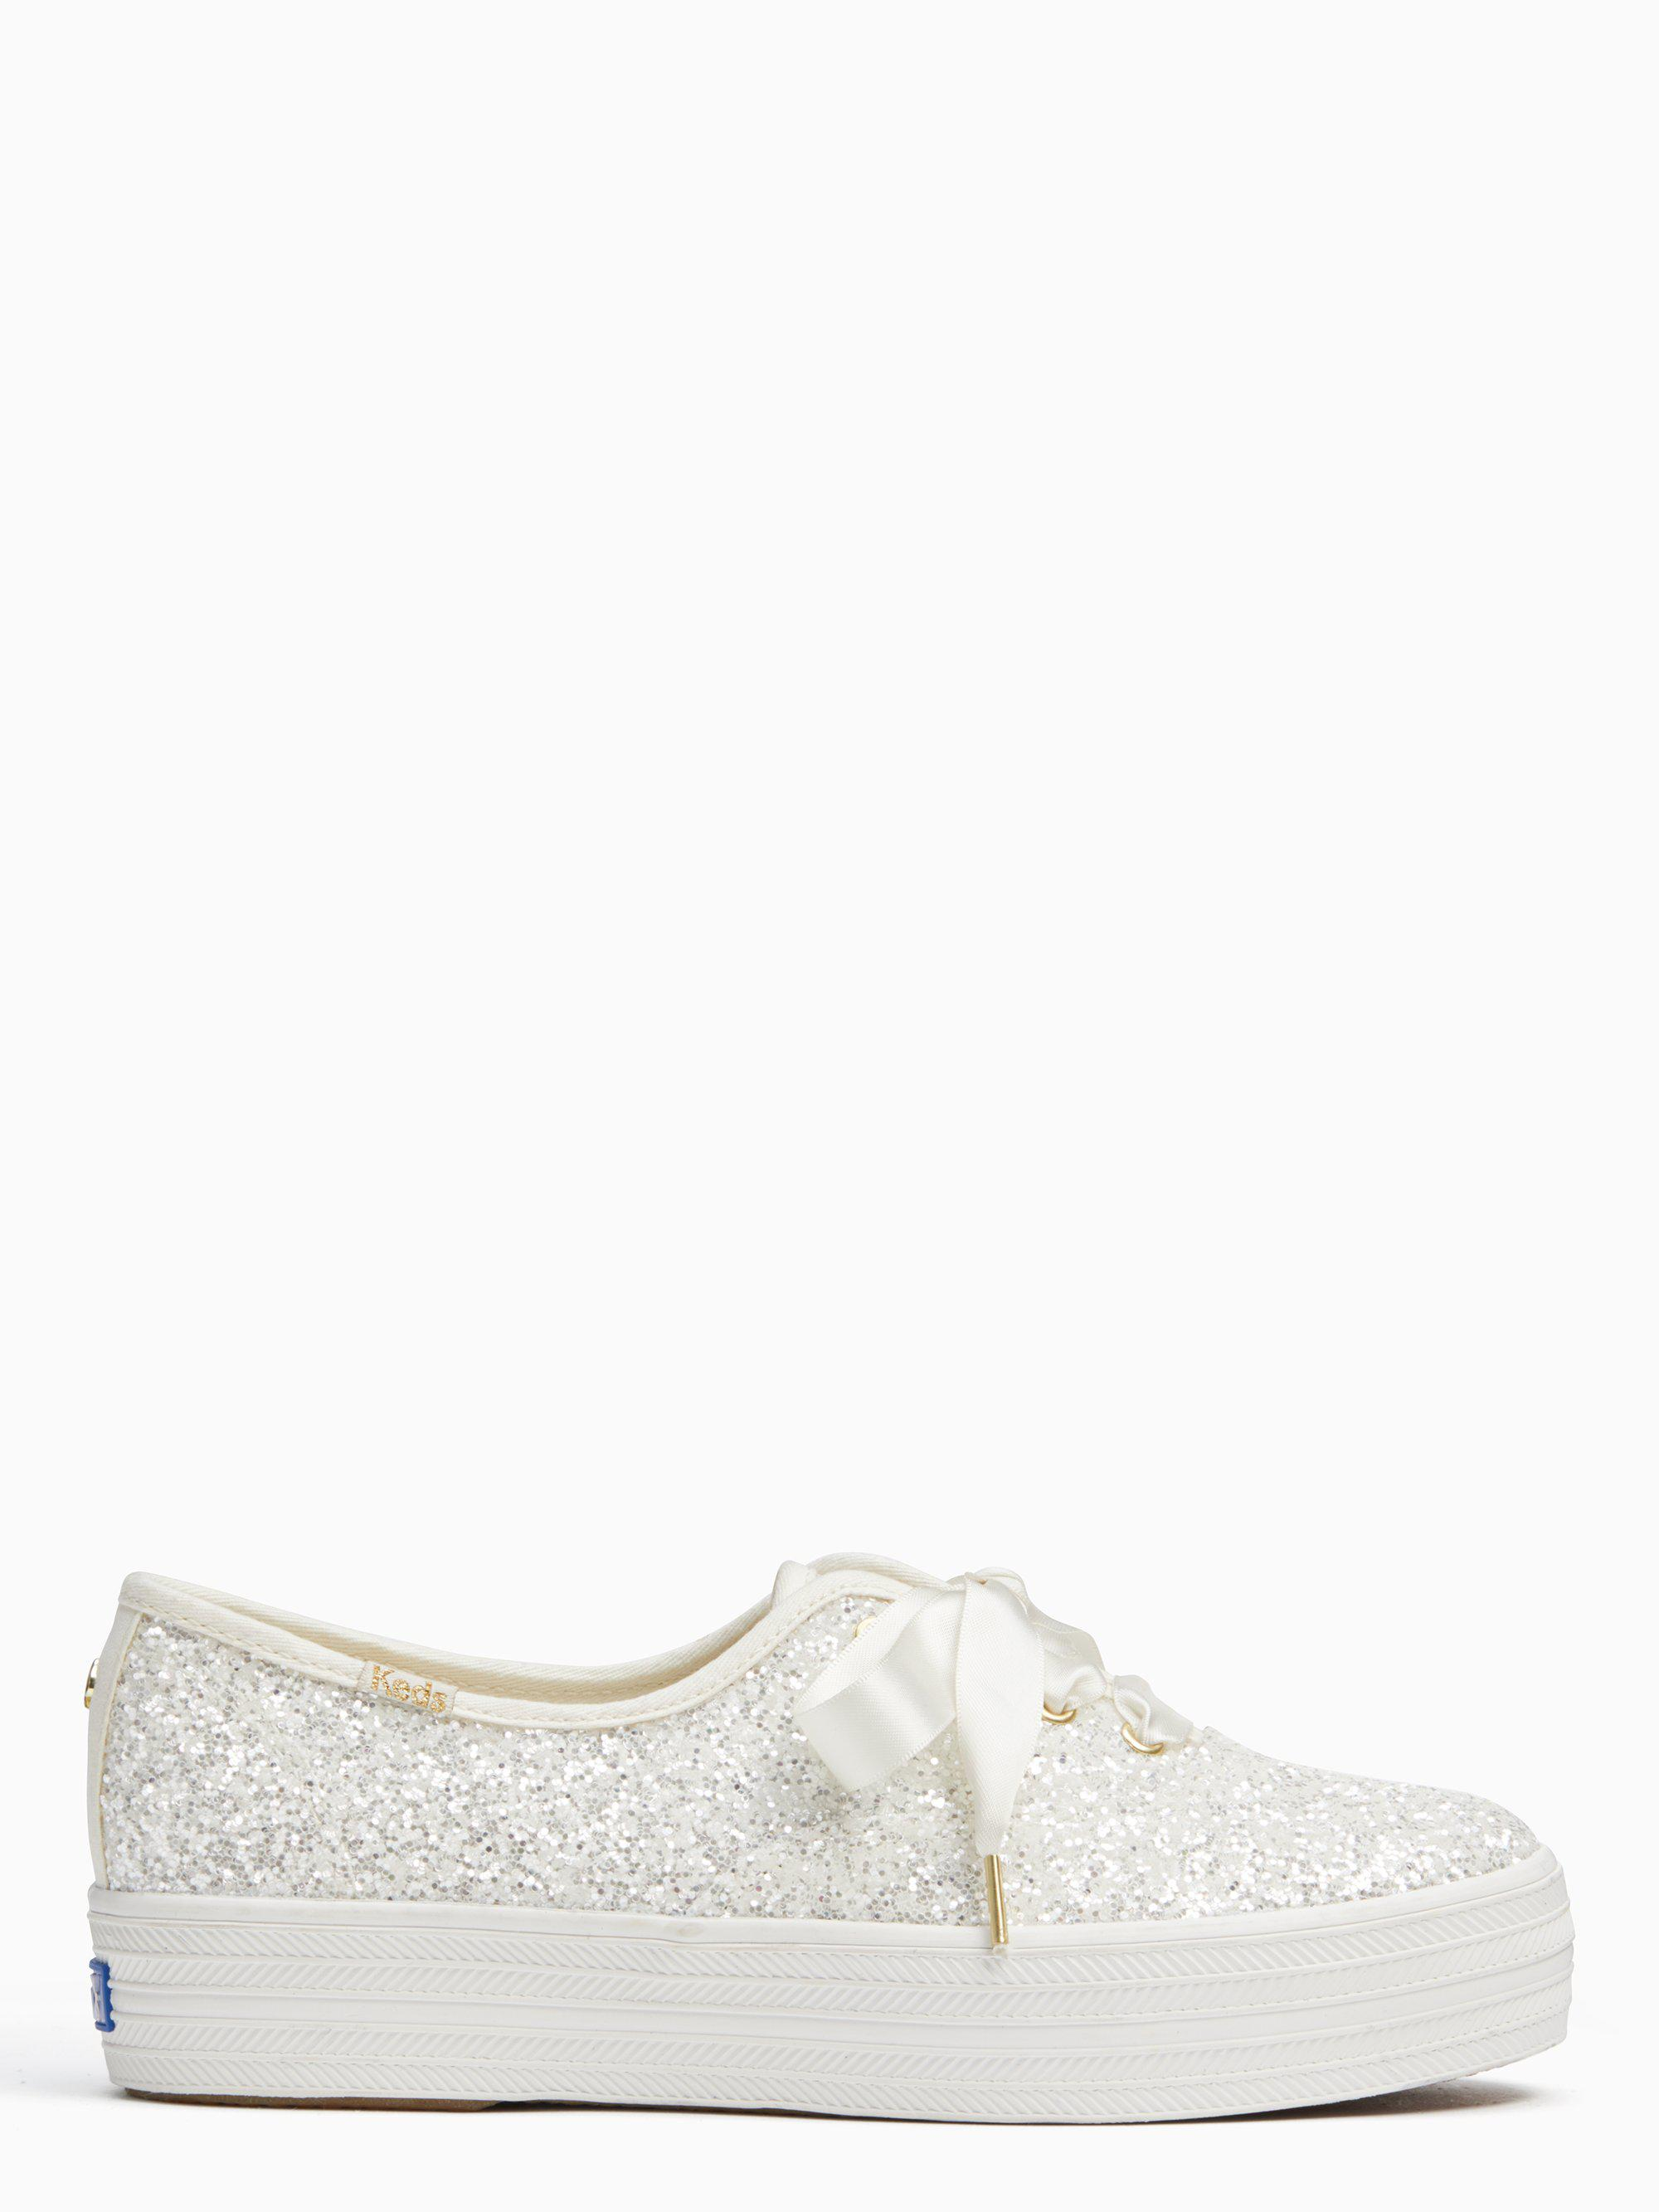 fa63aacf63 Lyst - Kate Spade Keds X New York Triple Glitter Sneakers in Natural